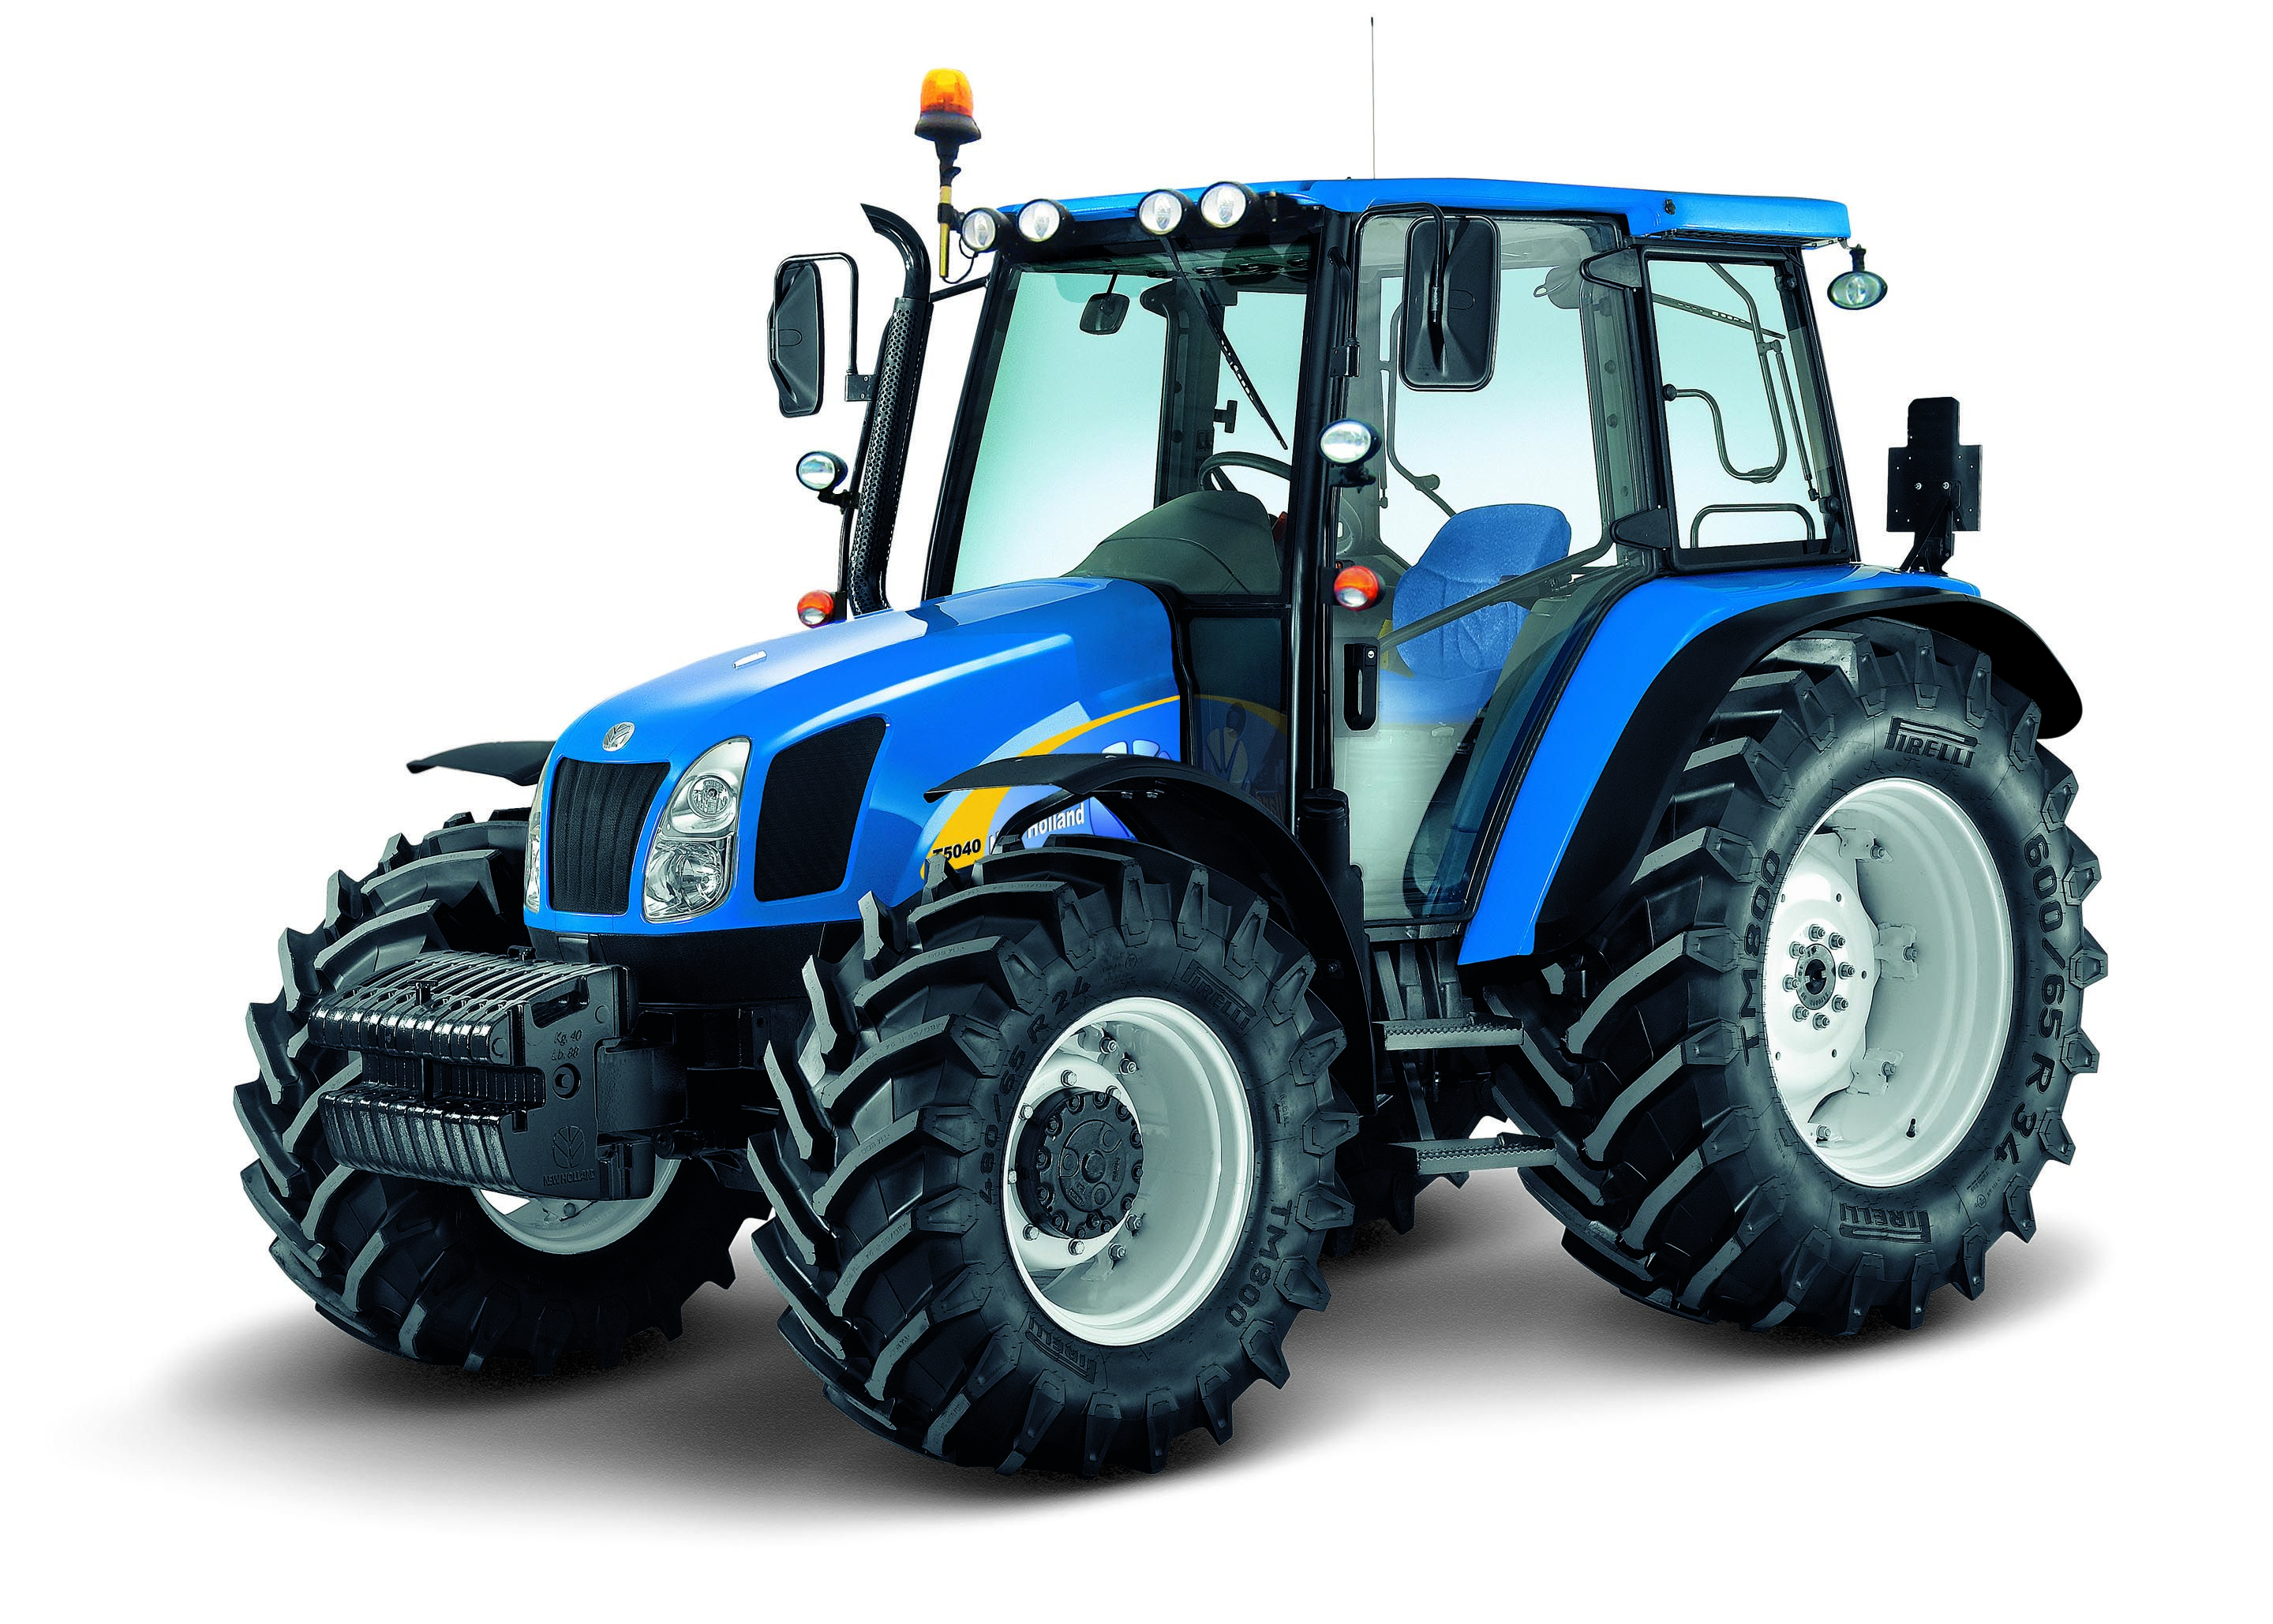 T5000 Agricultural Tractors | Adare Machinery Repair Manuals, Car Cleaning  Hacks, Agriculture Tractor,